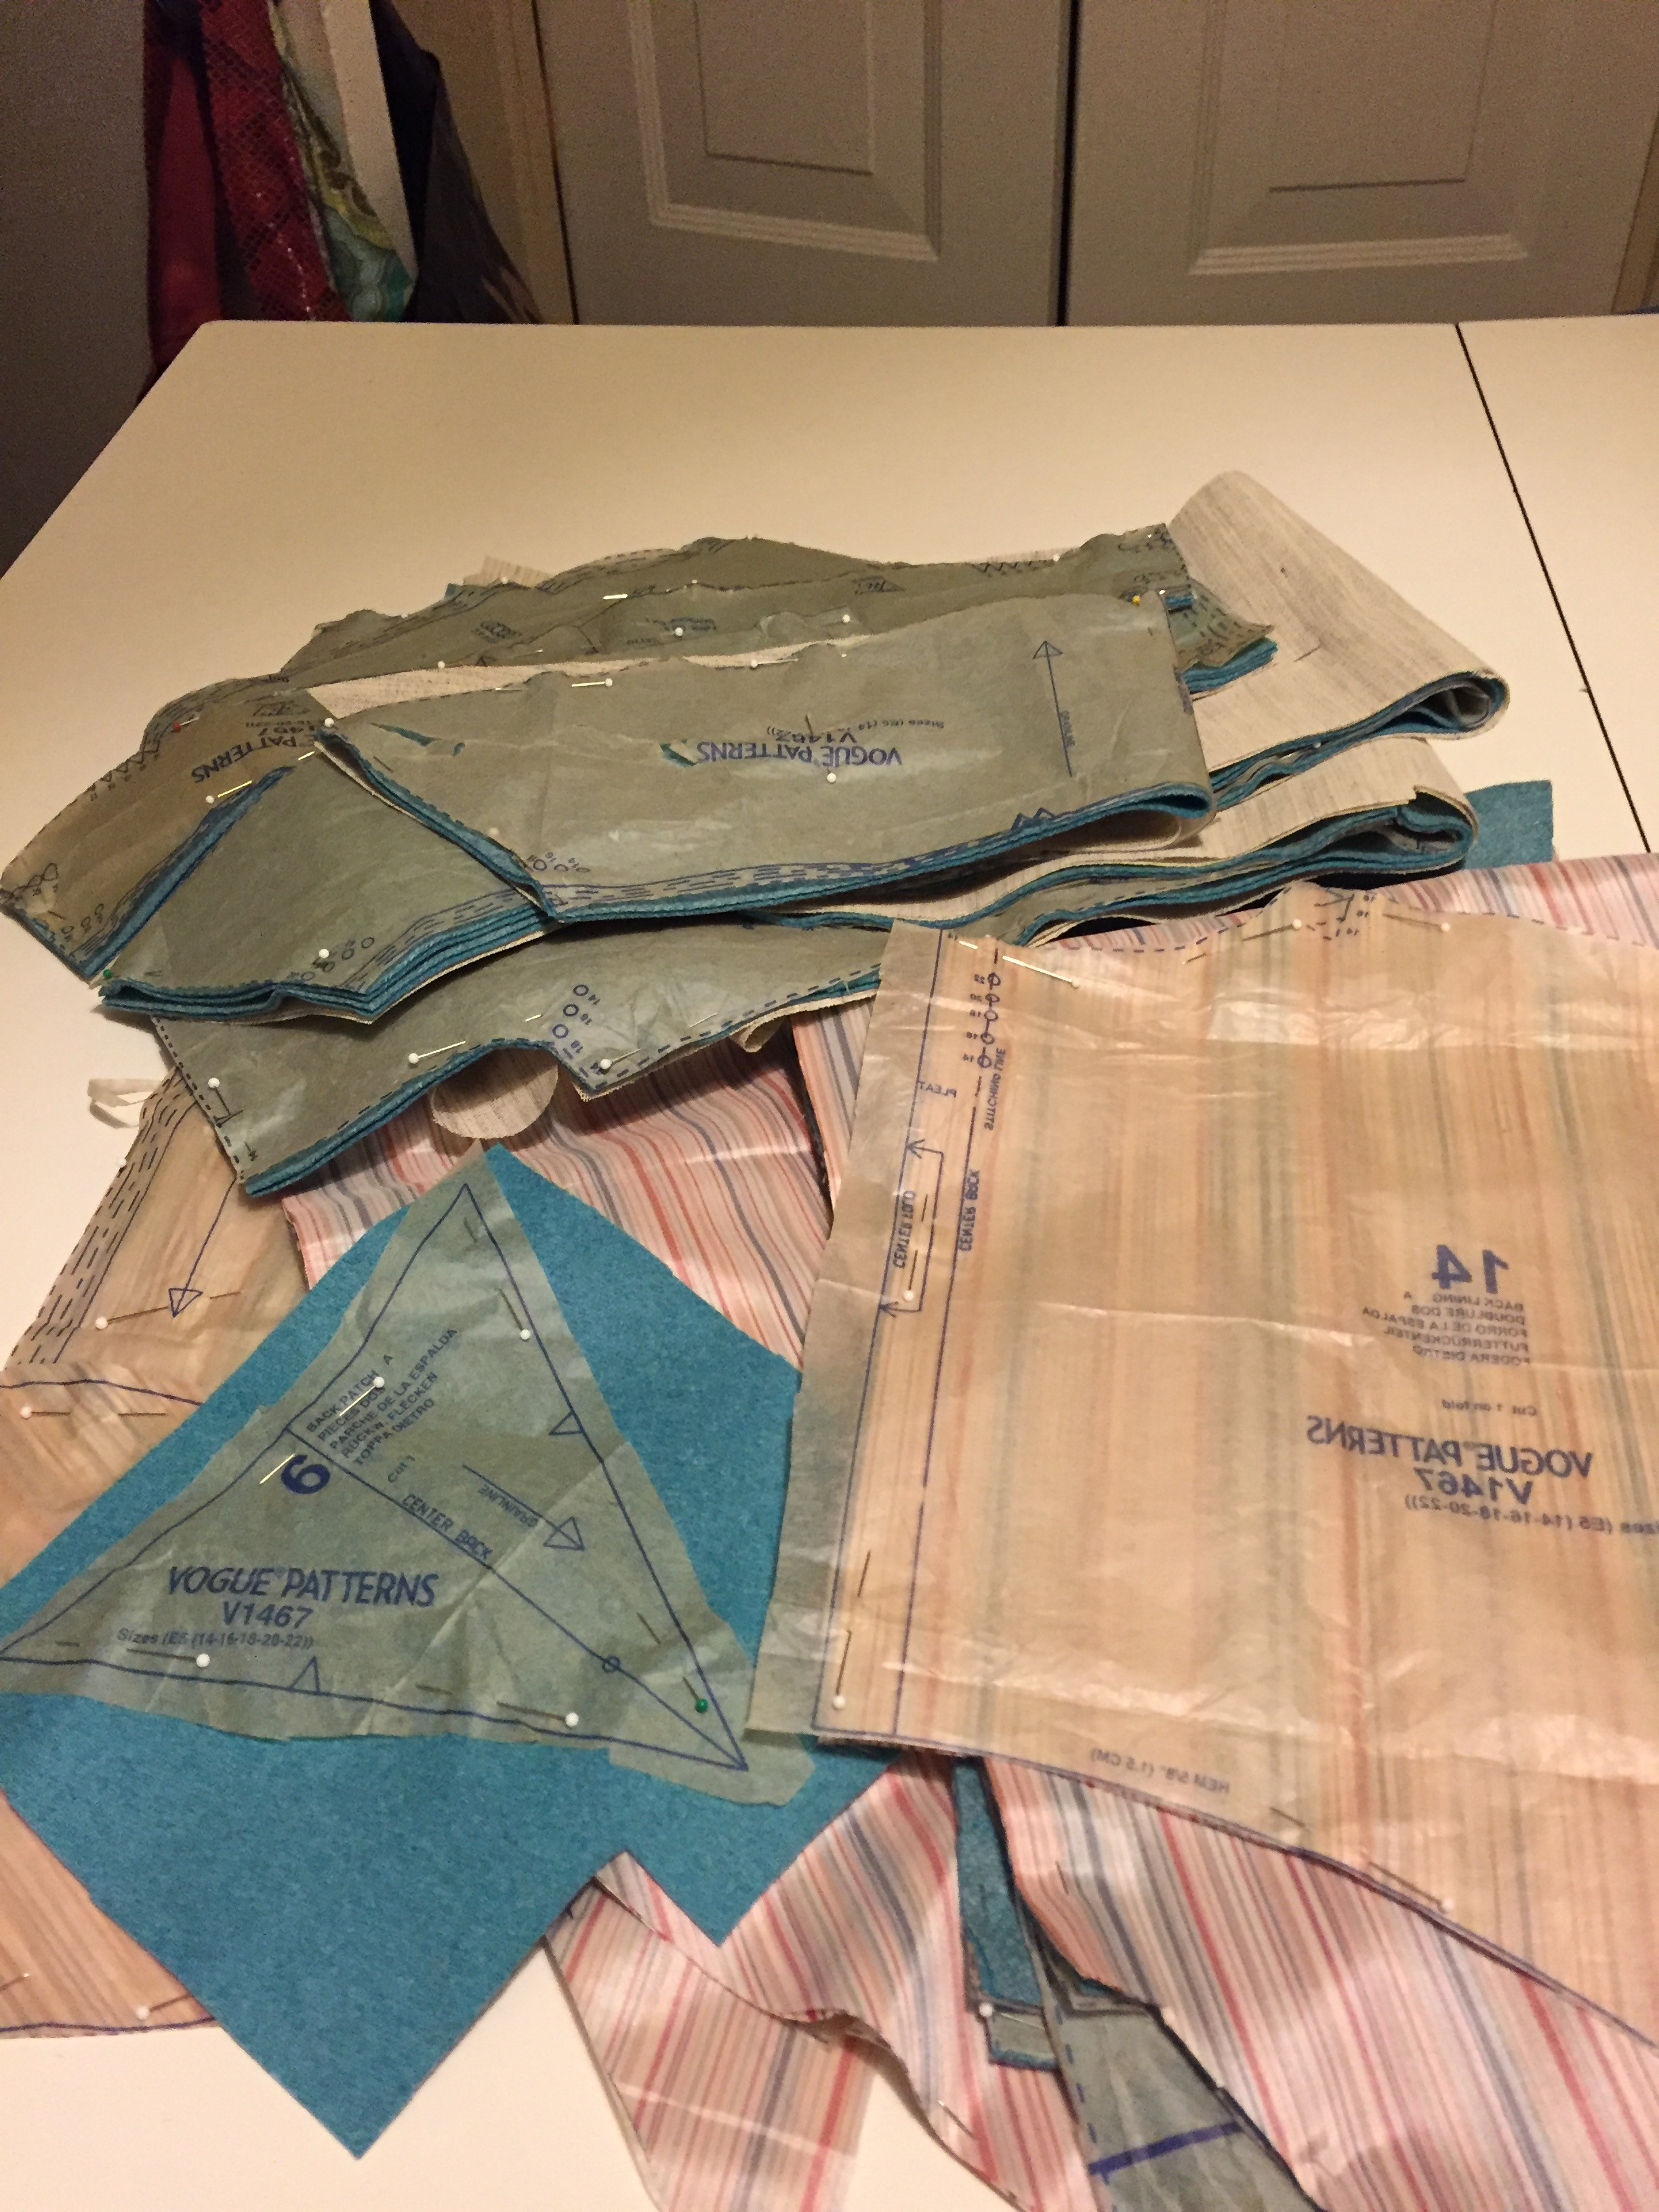 To Muslin or not Muslin, Pattern Layout, and Cutting